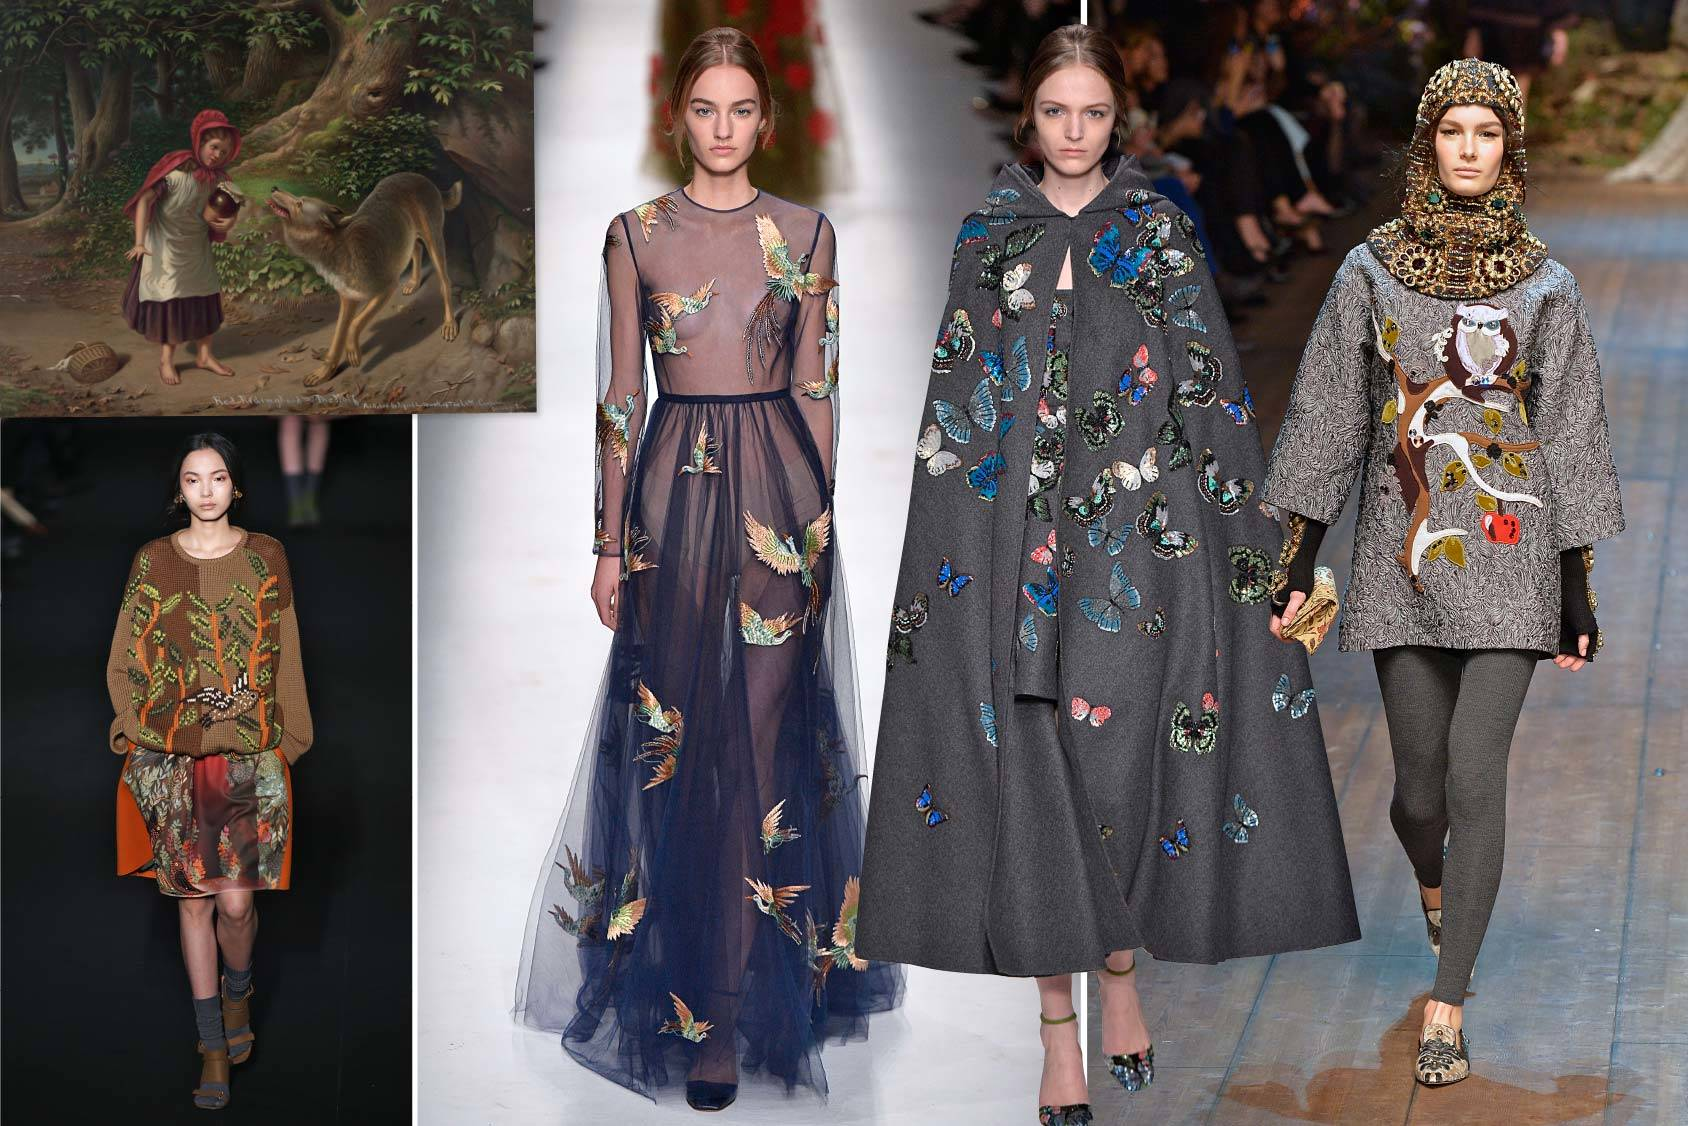 Alberta Ferretti and Valentino, Fall/Winter 2014 take on the fairy tales this season, All Over Press.